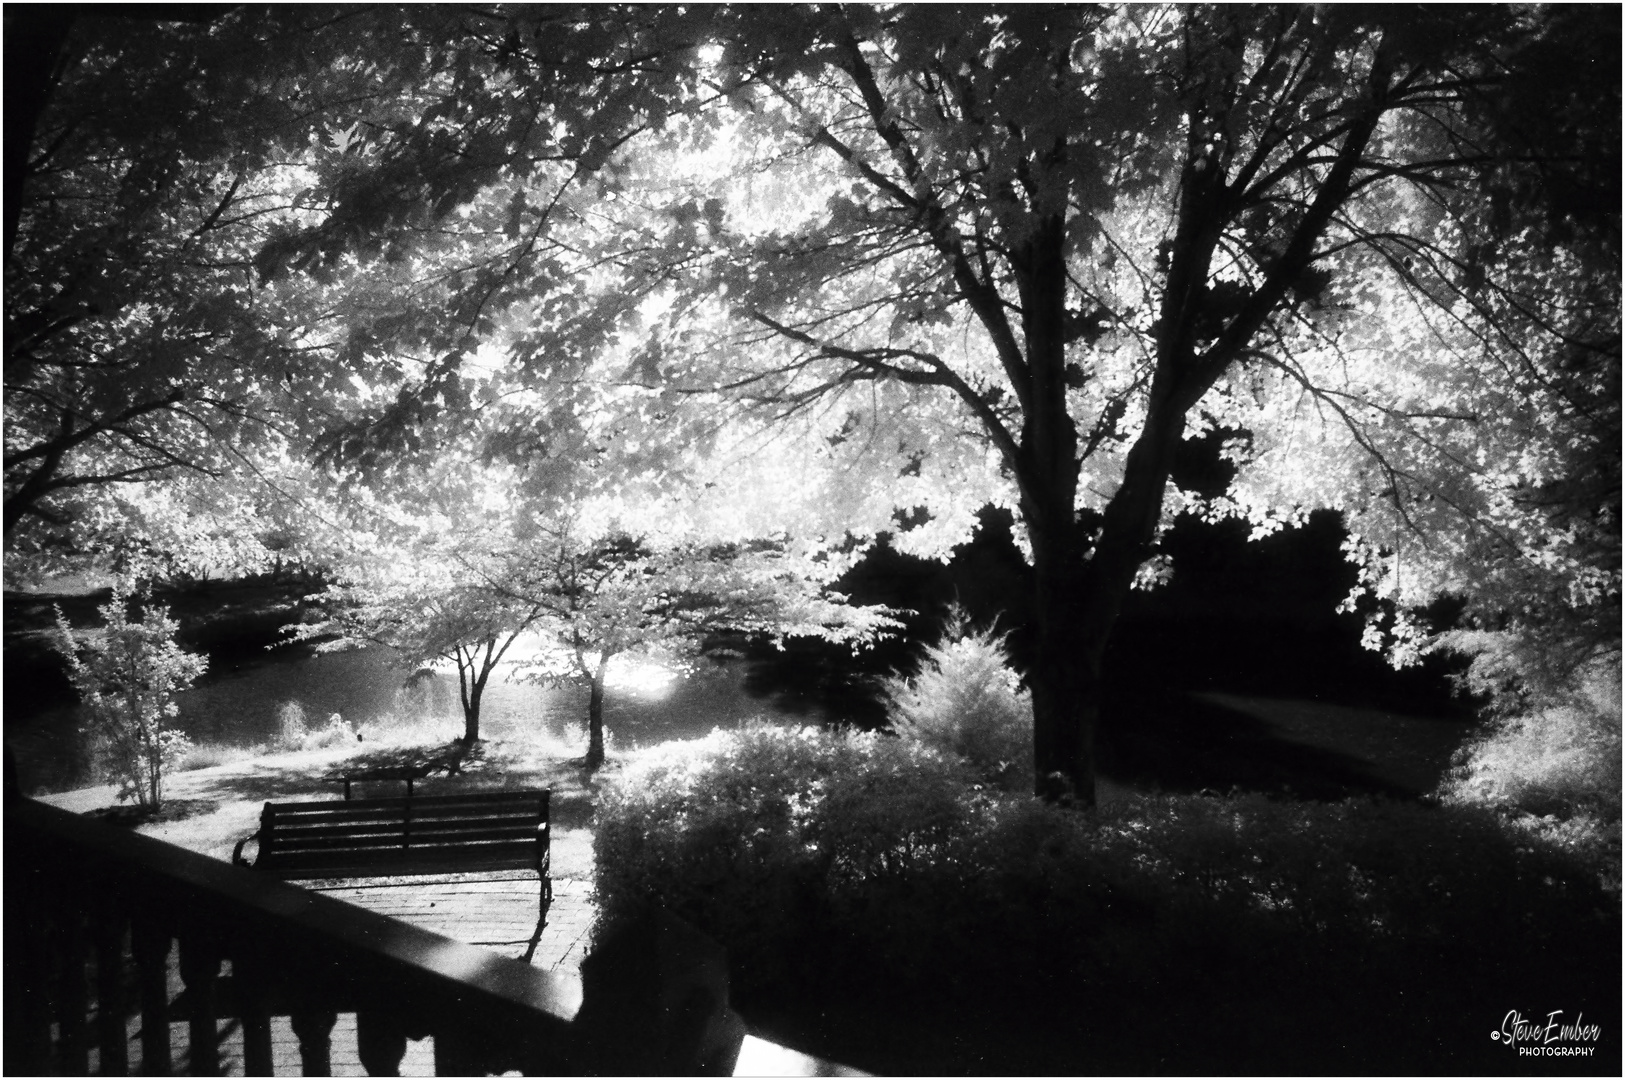 Summer at Quiet Waters No.7 - An Infrared Impression